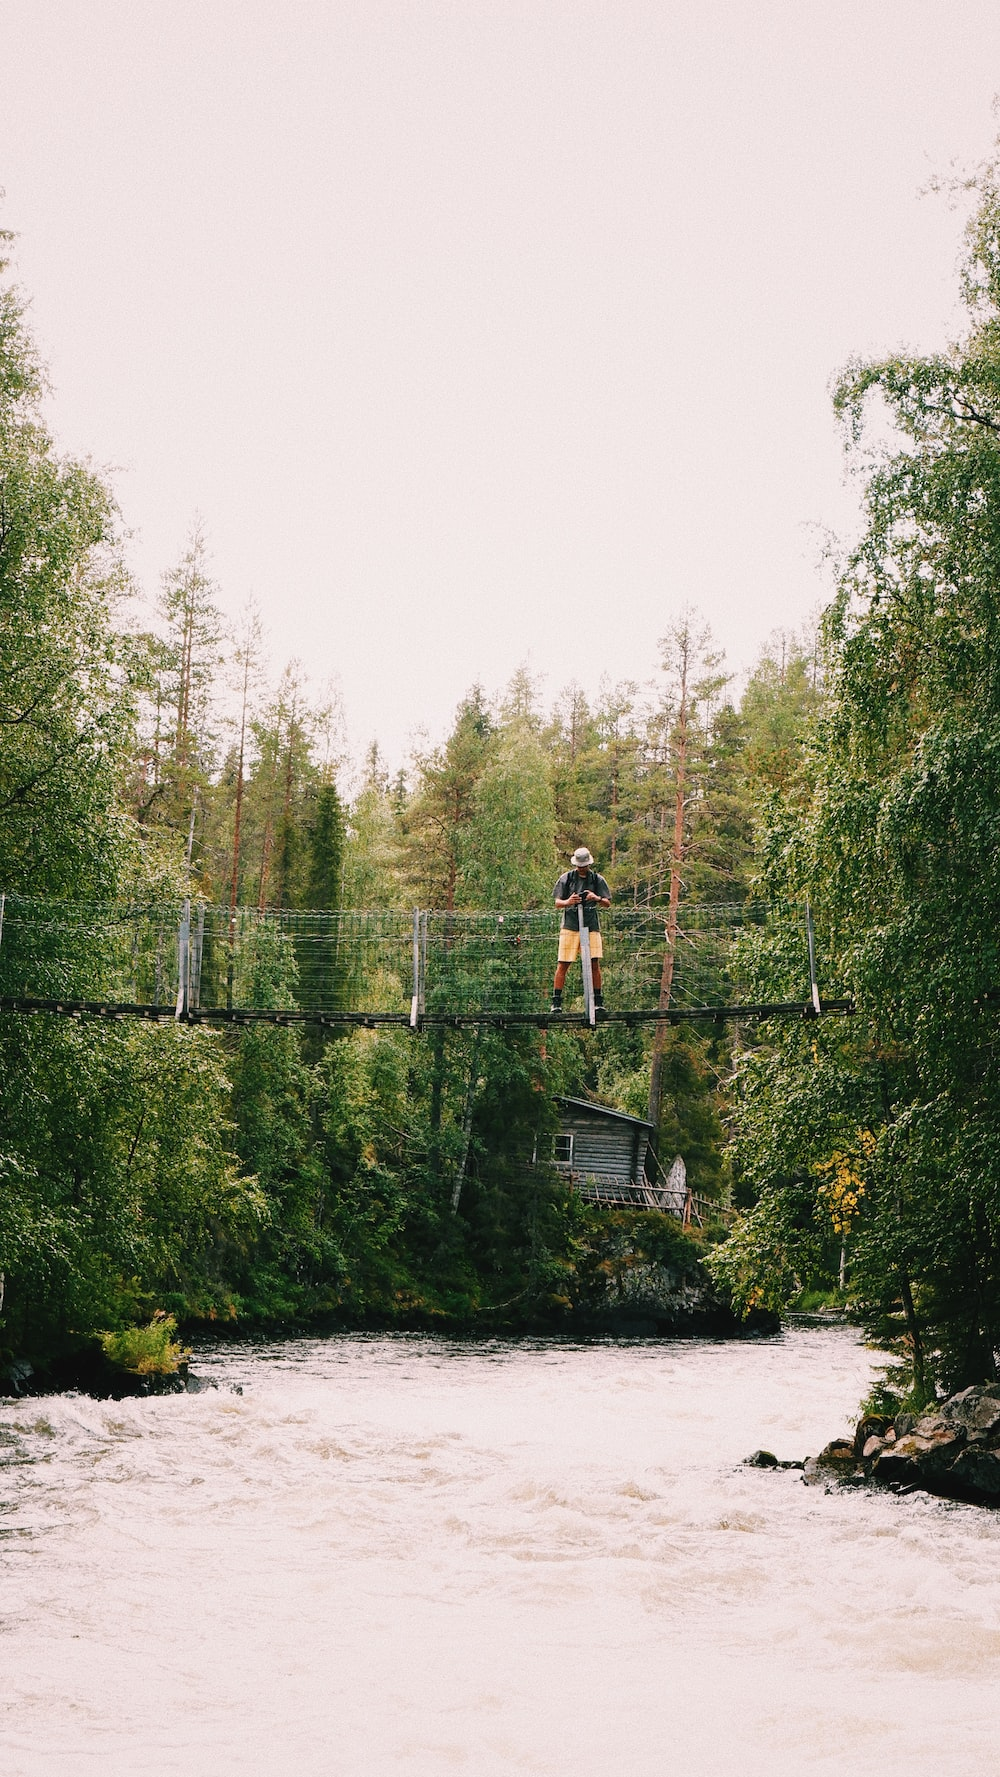 man in black t-shirt and black shorts standing on bridge over river during daytime